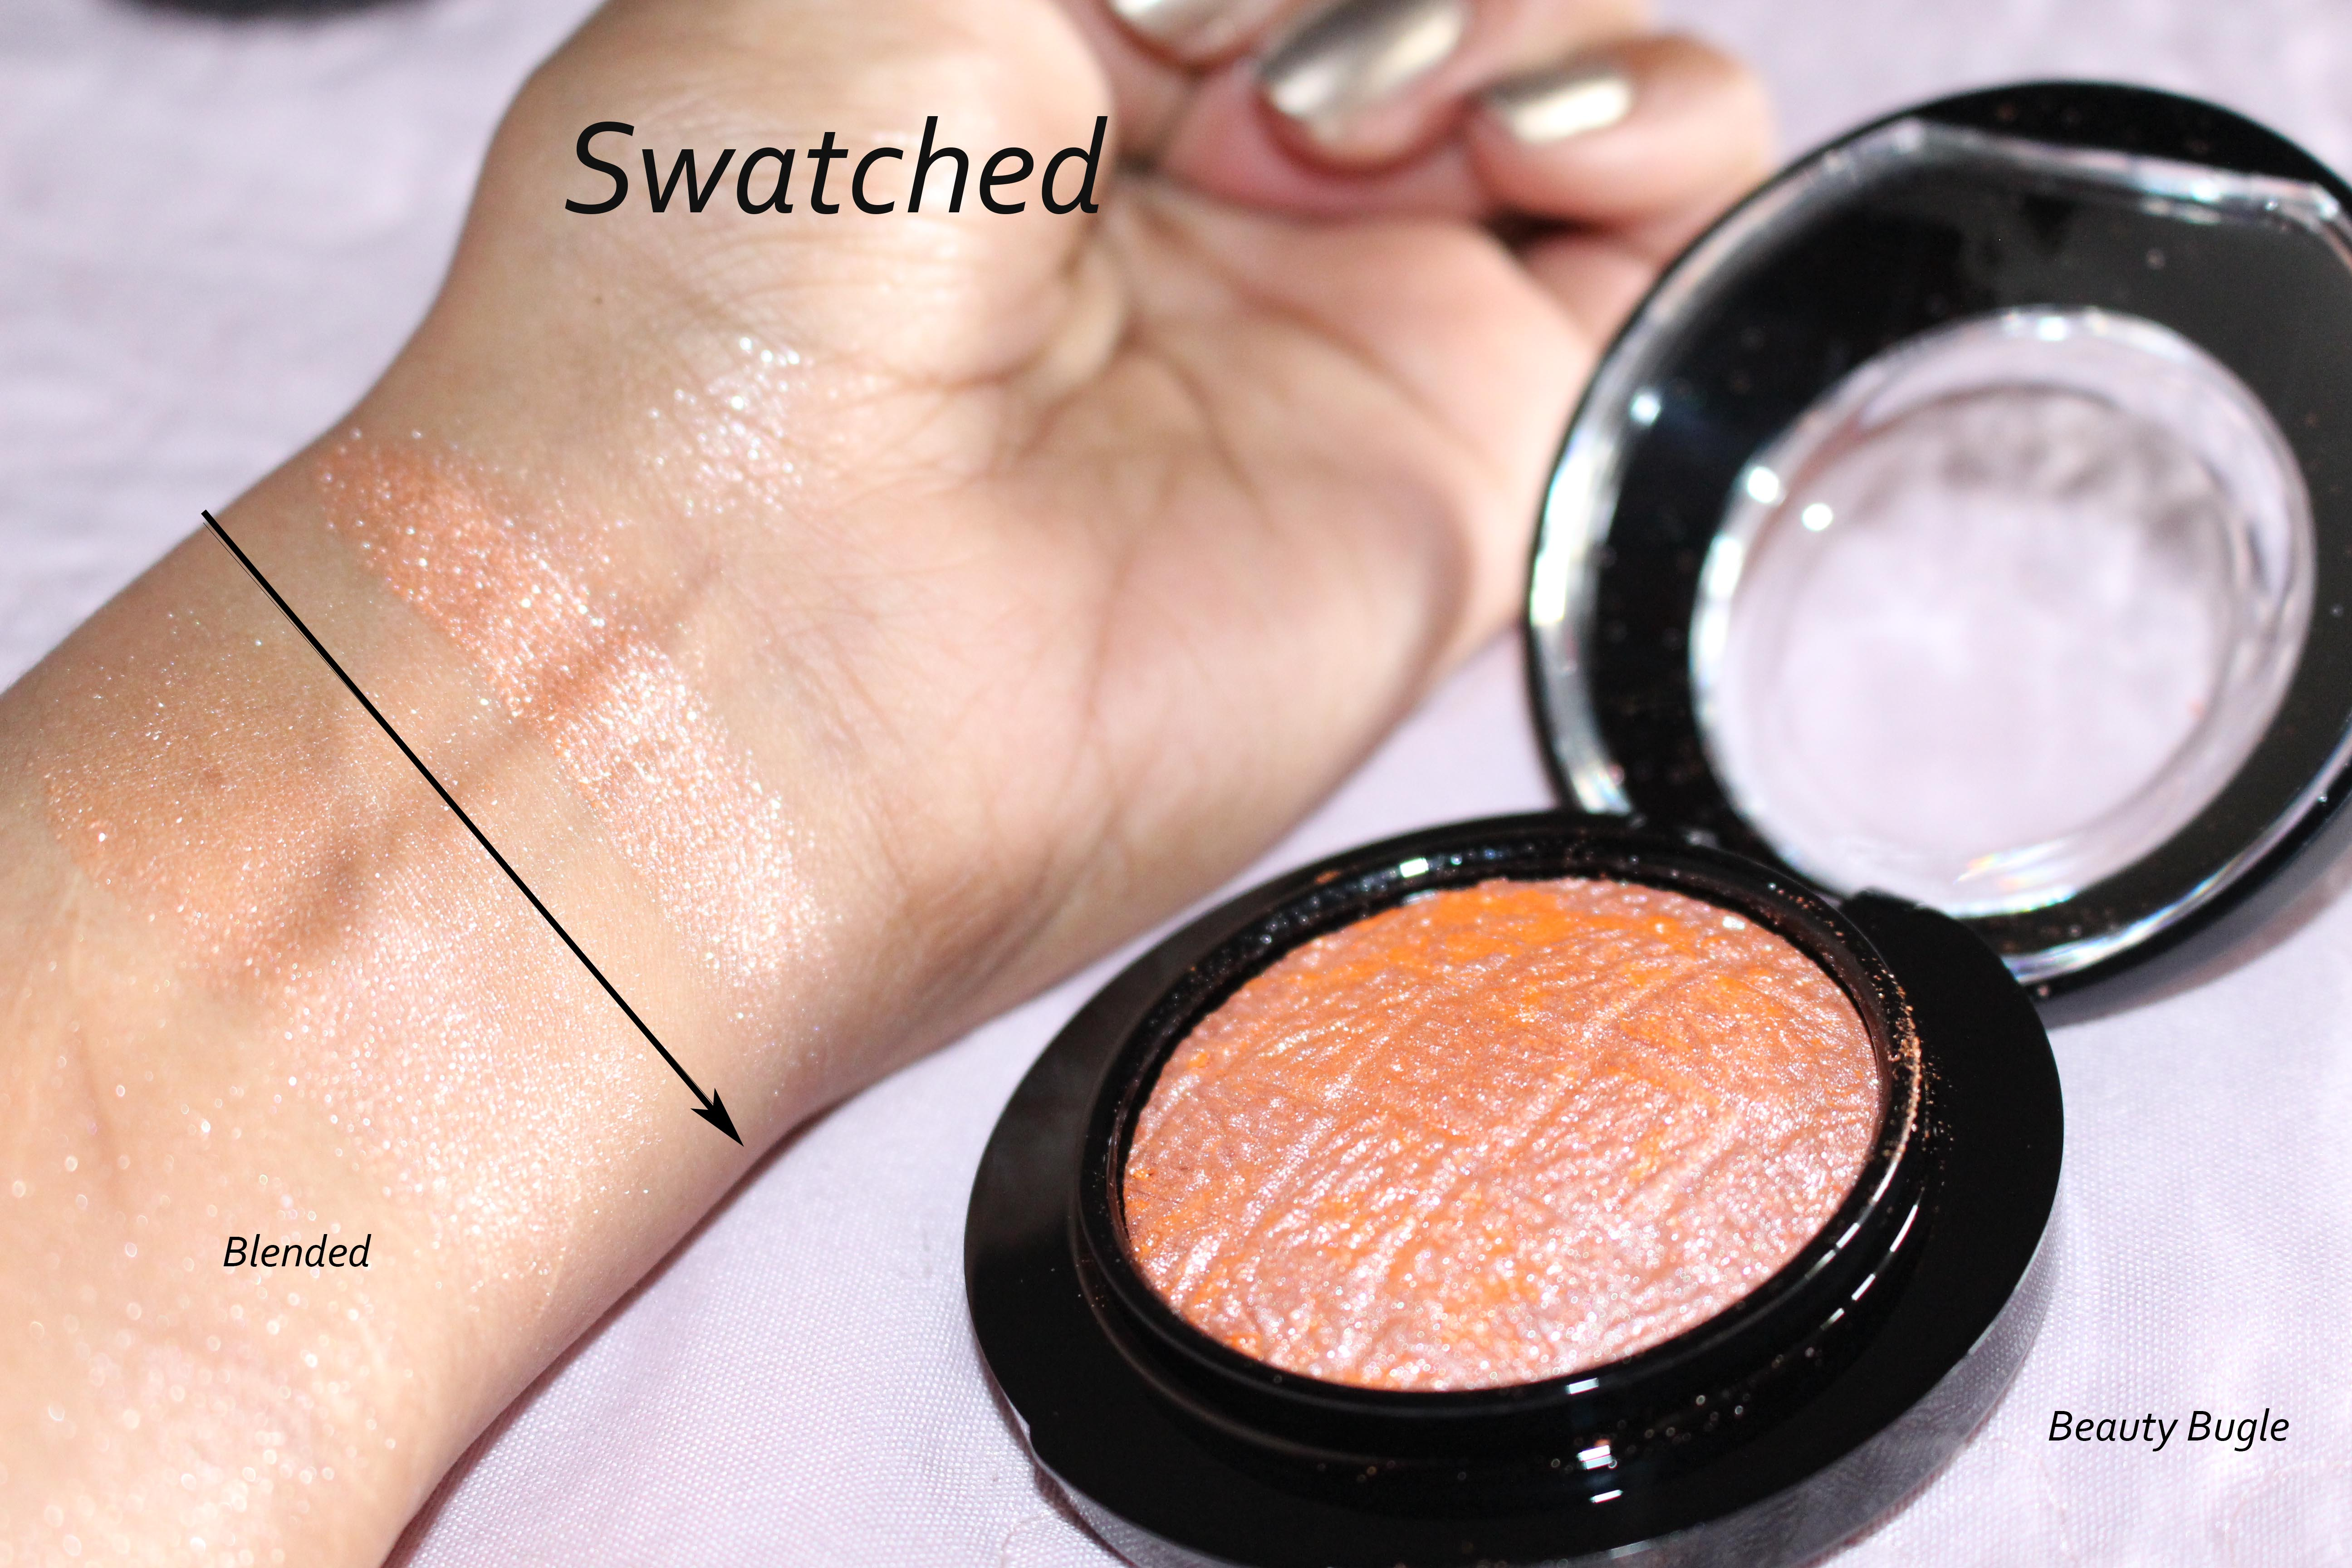 MAC Mineralize Blush in Uplifting swatched. As you can see when watched it is very pigments . Blended it sheers out to a more muted shade that is very unique but the silver sparkles is overwhelming.